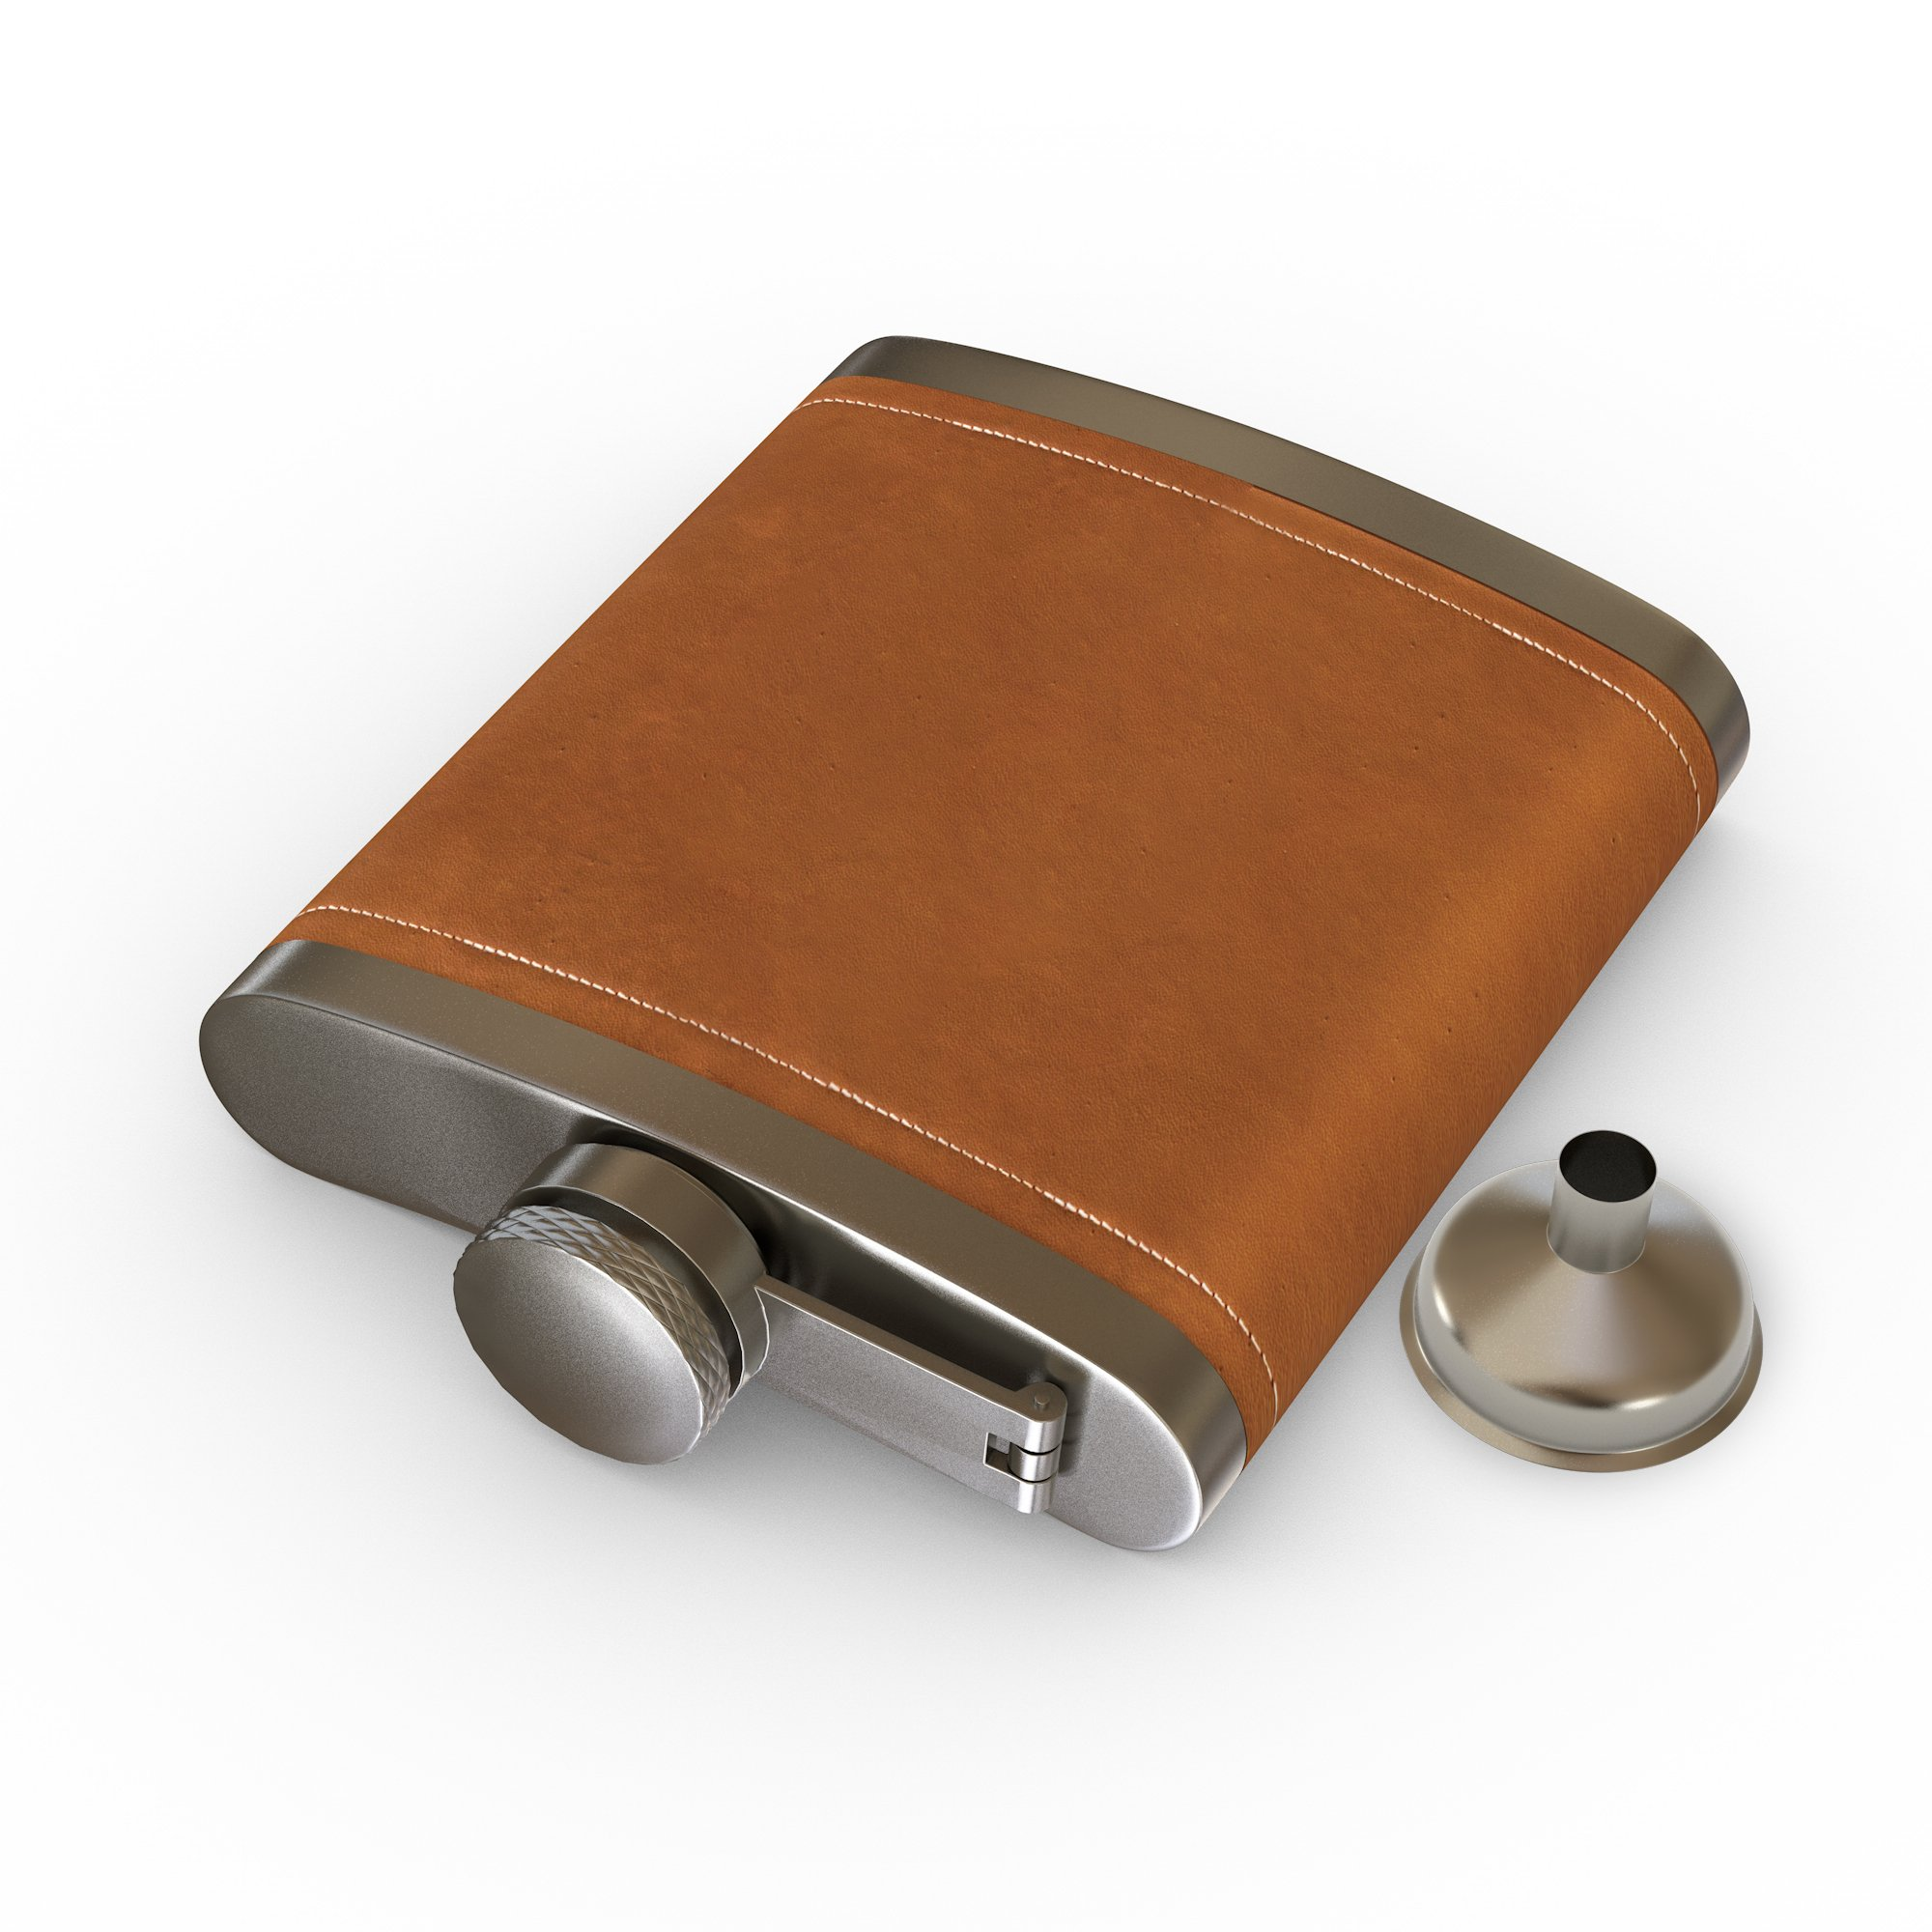 Flask Brown Leather, Hip Flask,2PCS by IBRR (Image #3)